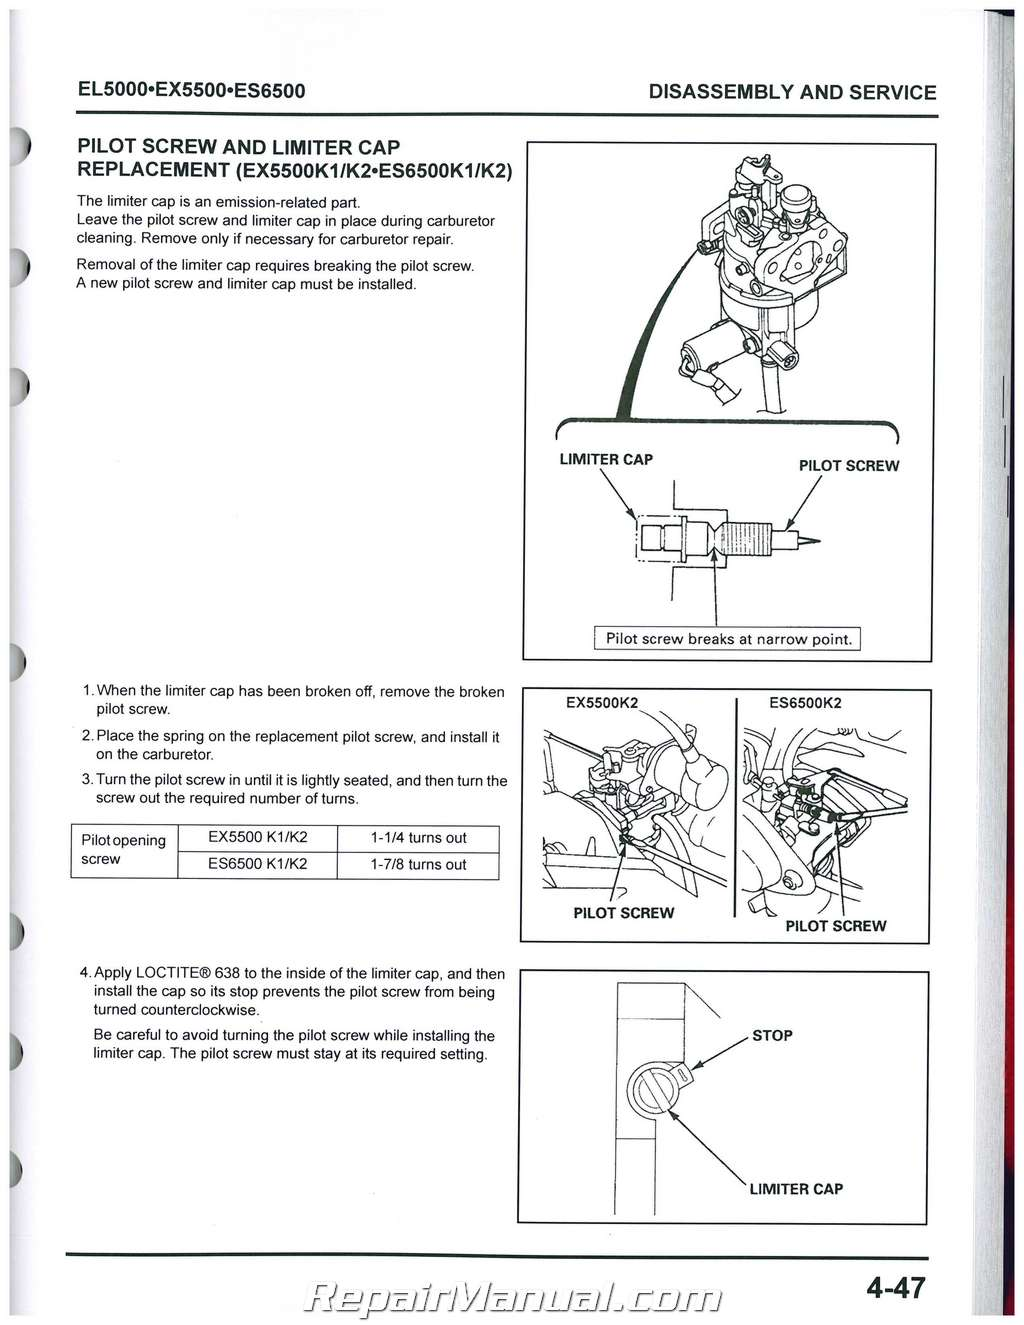 Honda el5000 es6500 ex5500 generator shop manual swarovskicordoba